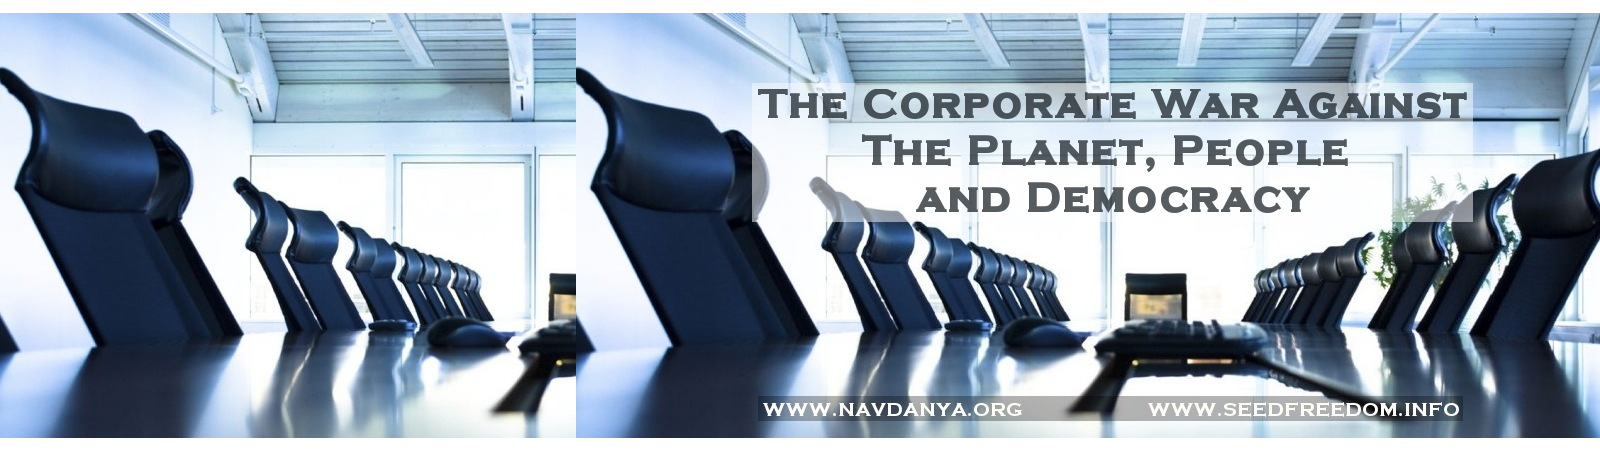 THE CORPORATE WAR AGAINST